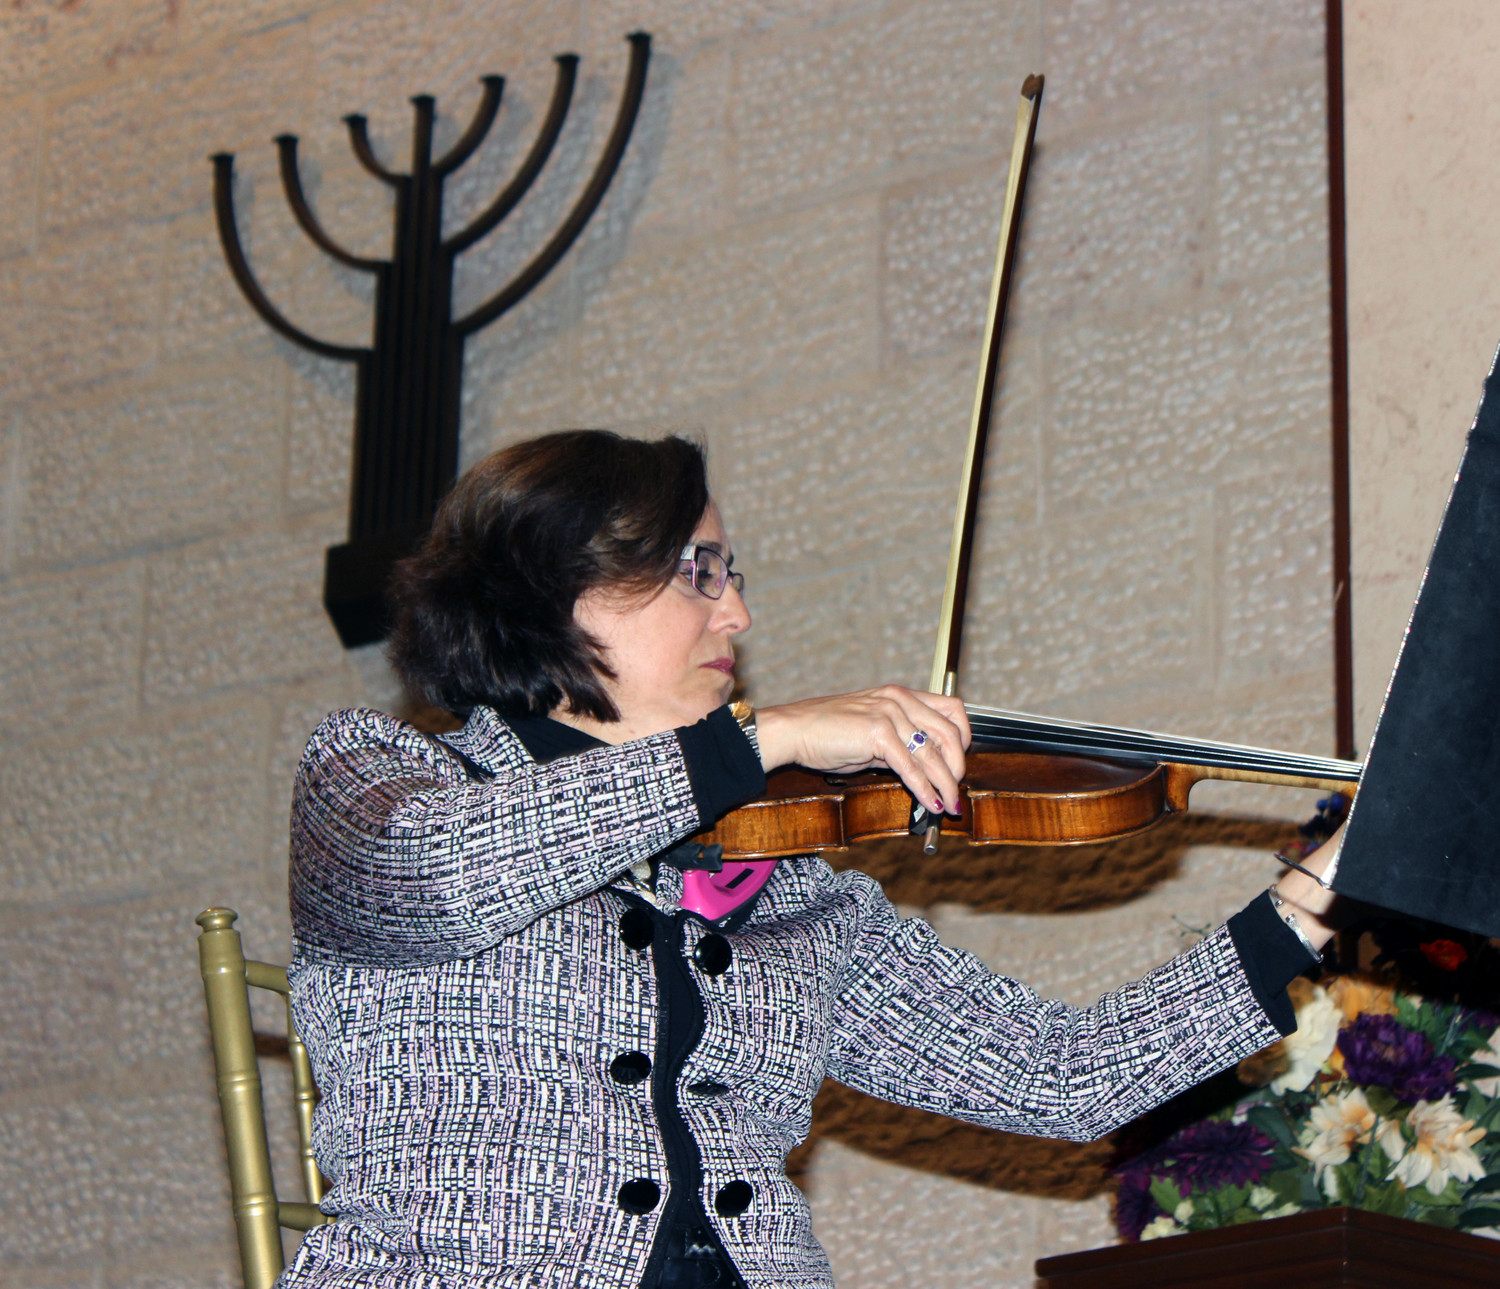 Geri Kushner played a restored viola in a string quartet at the East Meadow Jewish Center's Holocaust Remembrance Day service on April 11.